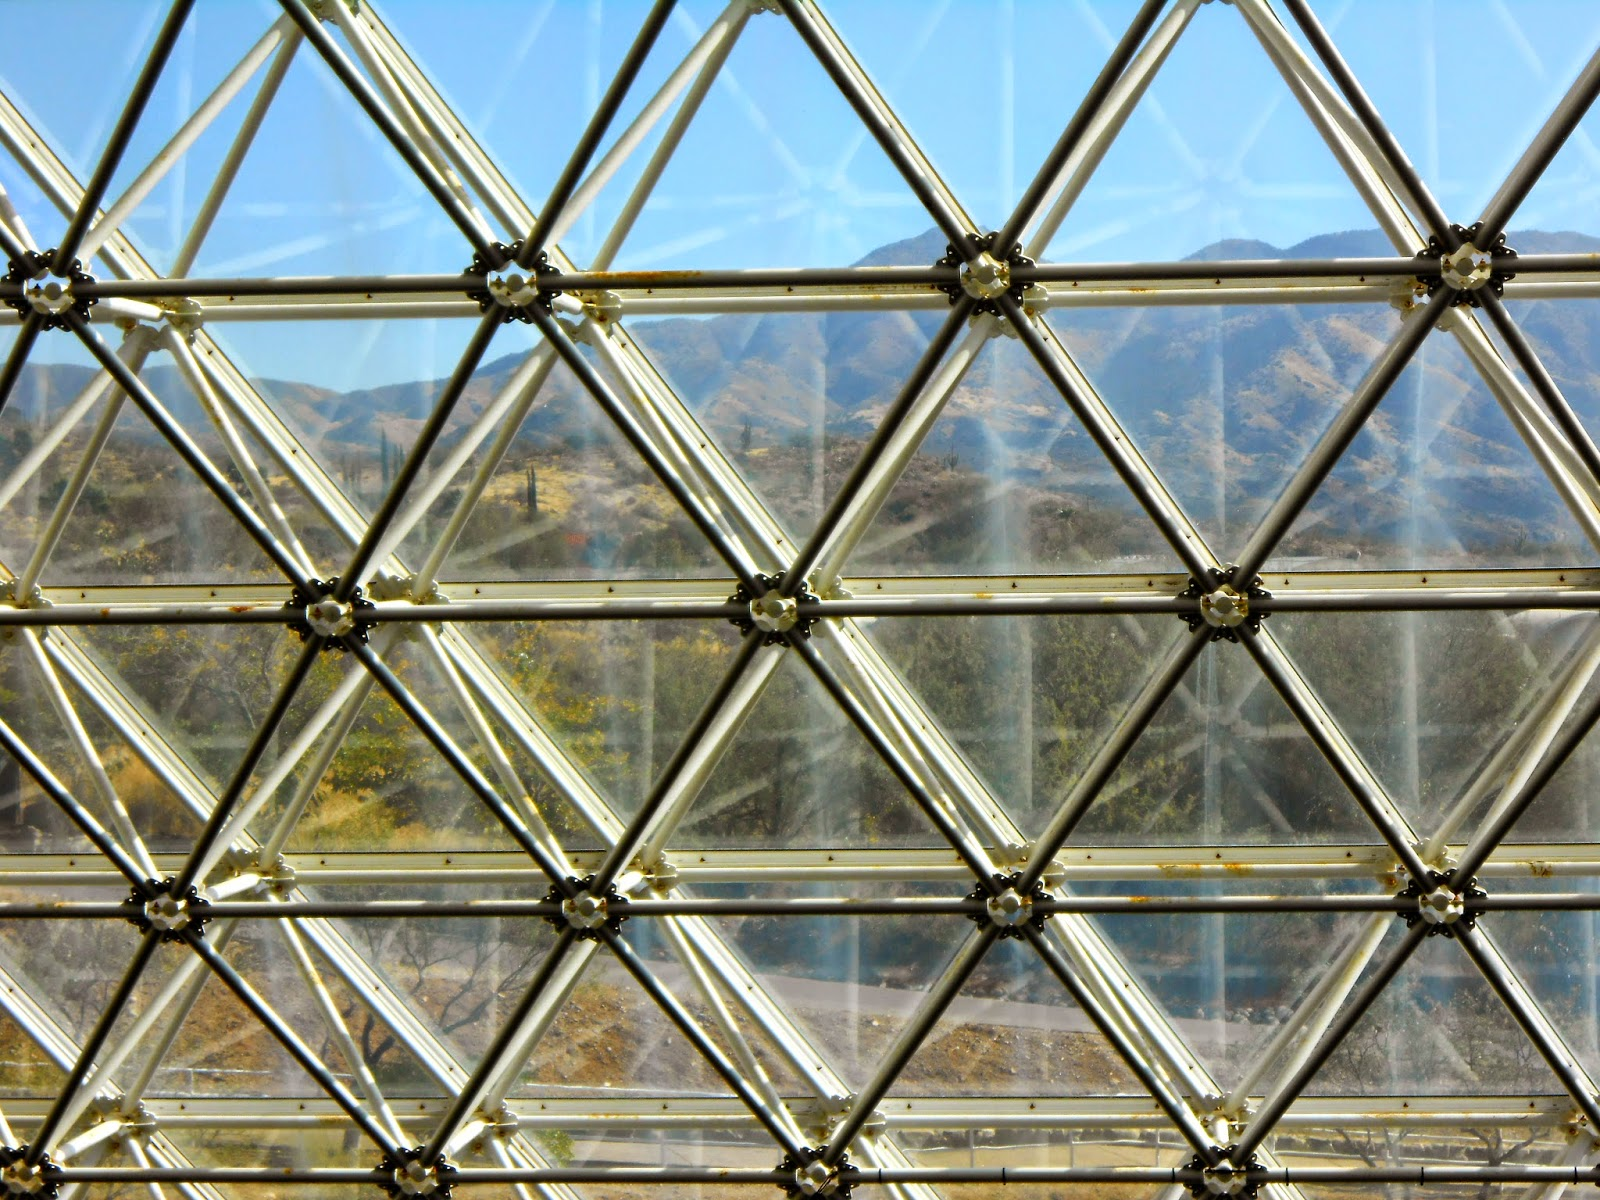 touring the biosphere II attraction in oracle arizona